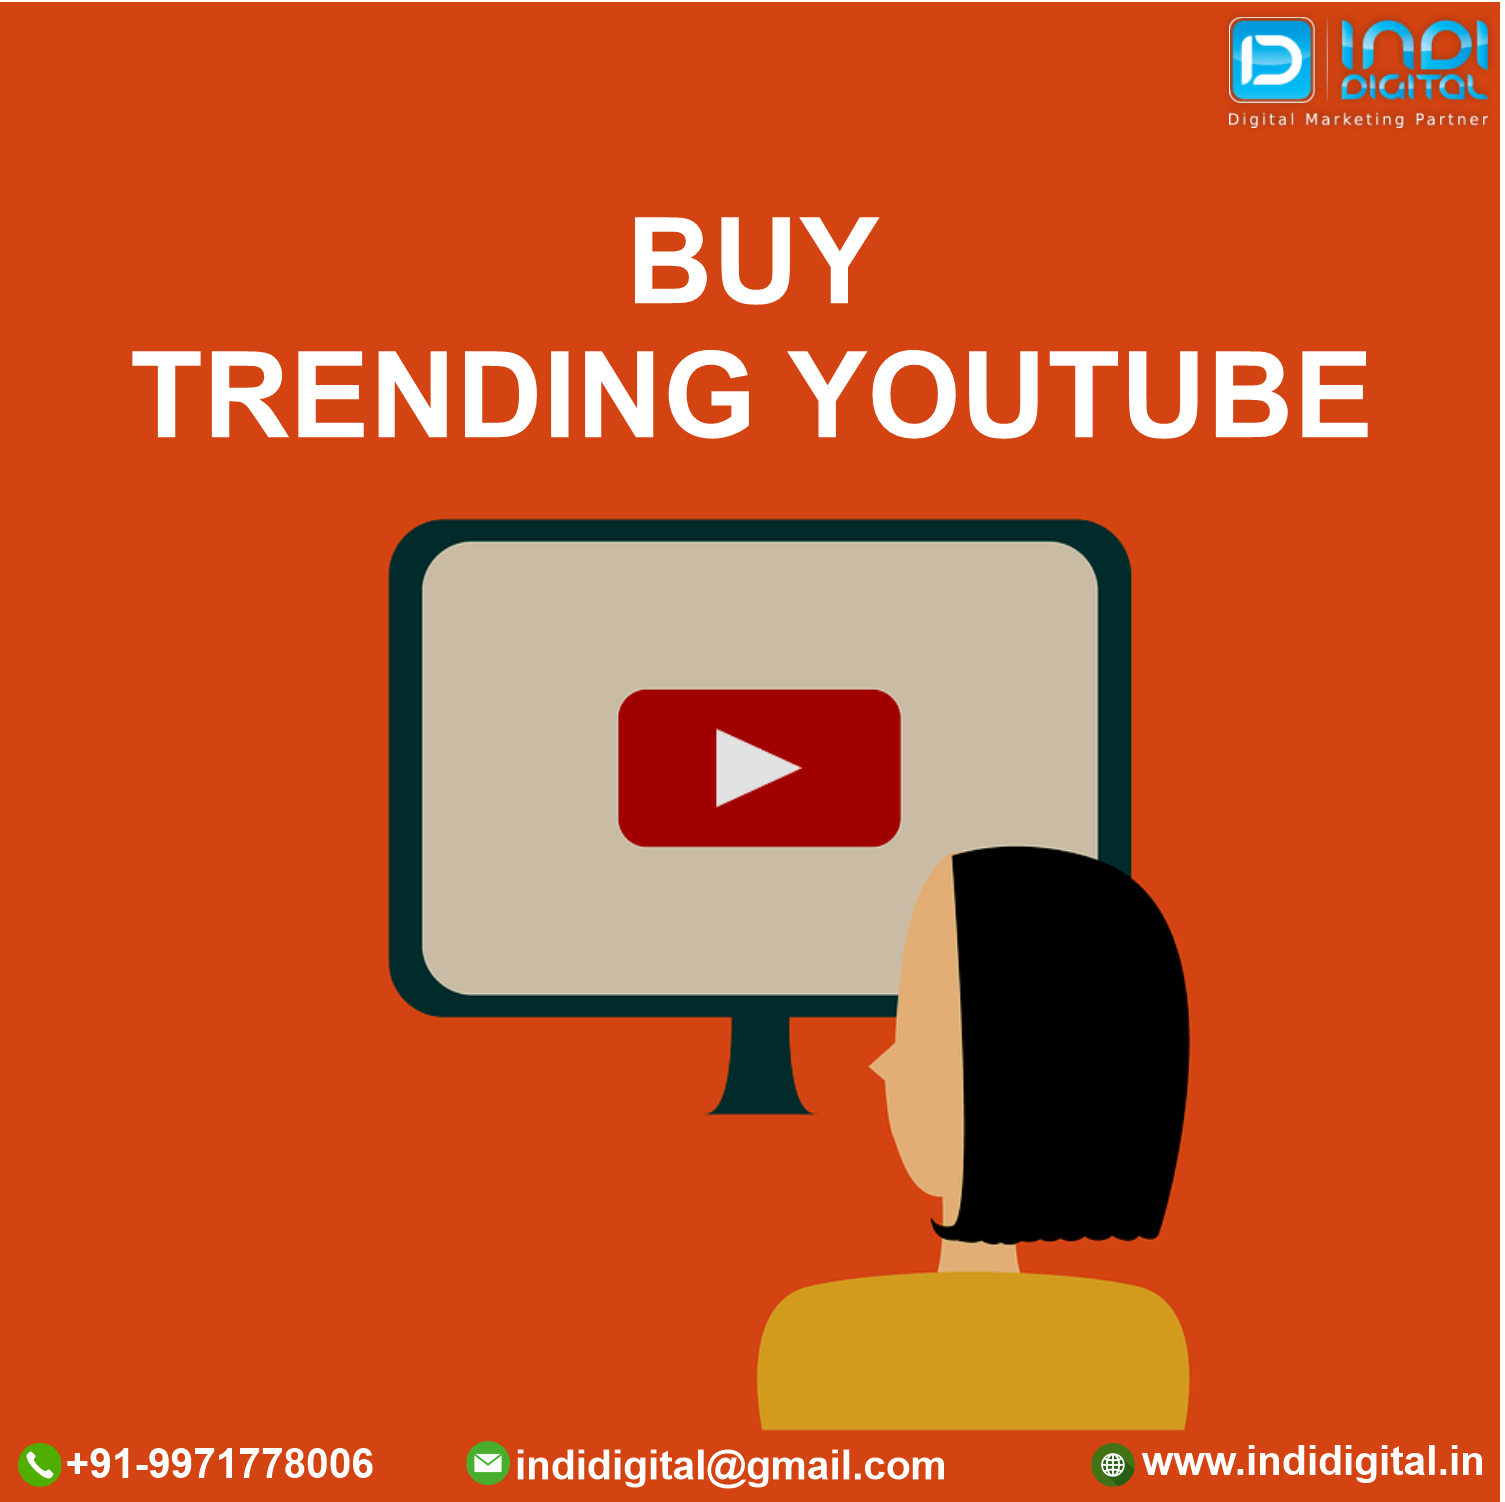 Get the best YouTube trending service in India